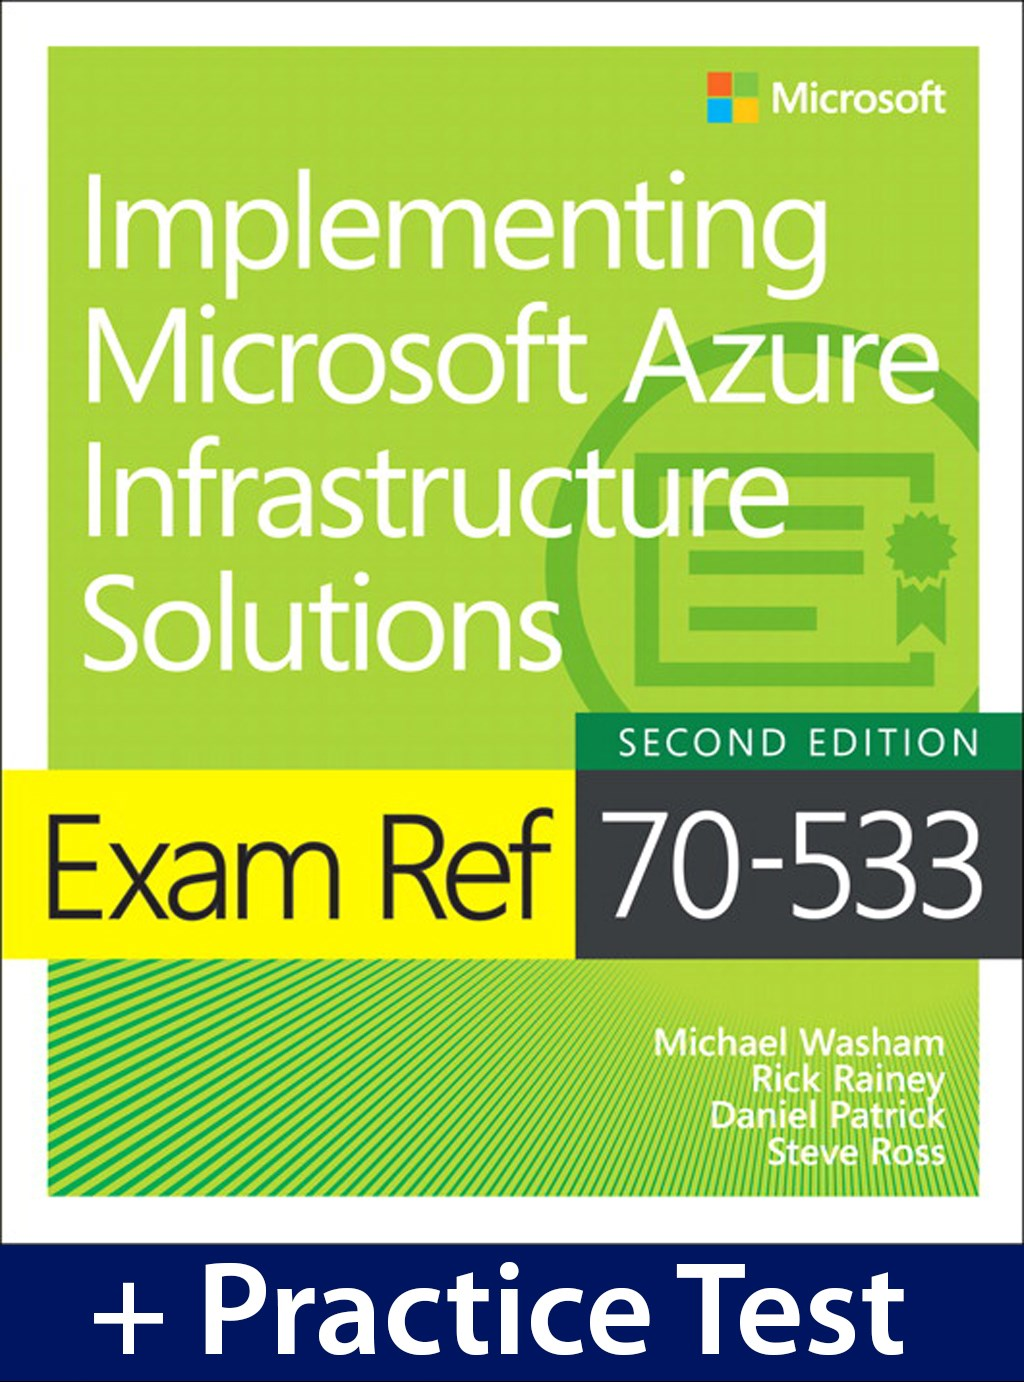 Exam Ref 70-533 Implementing Microsoft Azure Infrastructure Solutions with Practice Test, 2nd Edition